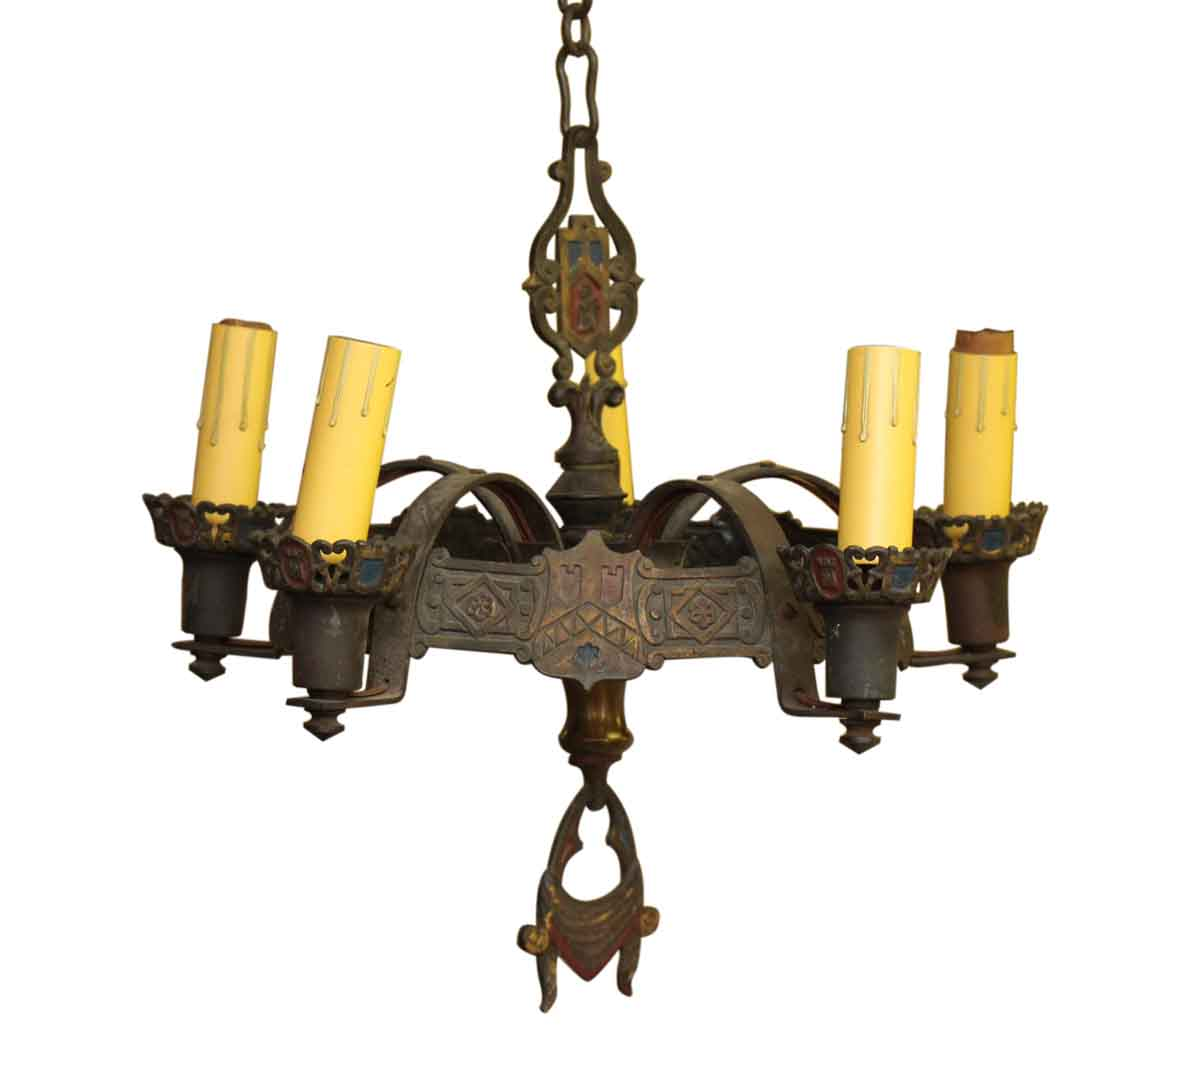 Wrought Iron Rectangular Chandelier Five Light Spanish Revival Wrought Iron Chandelier Olde